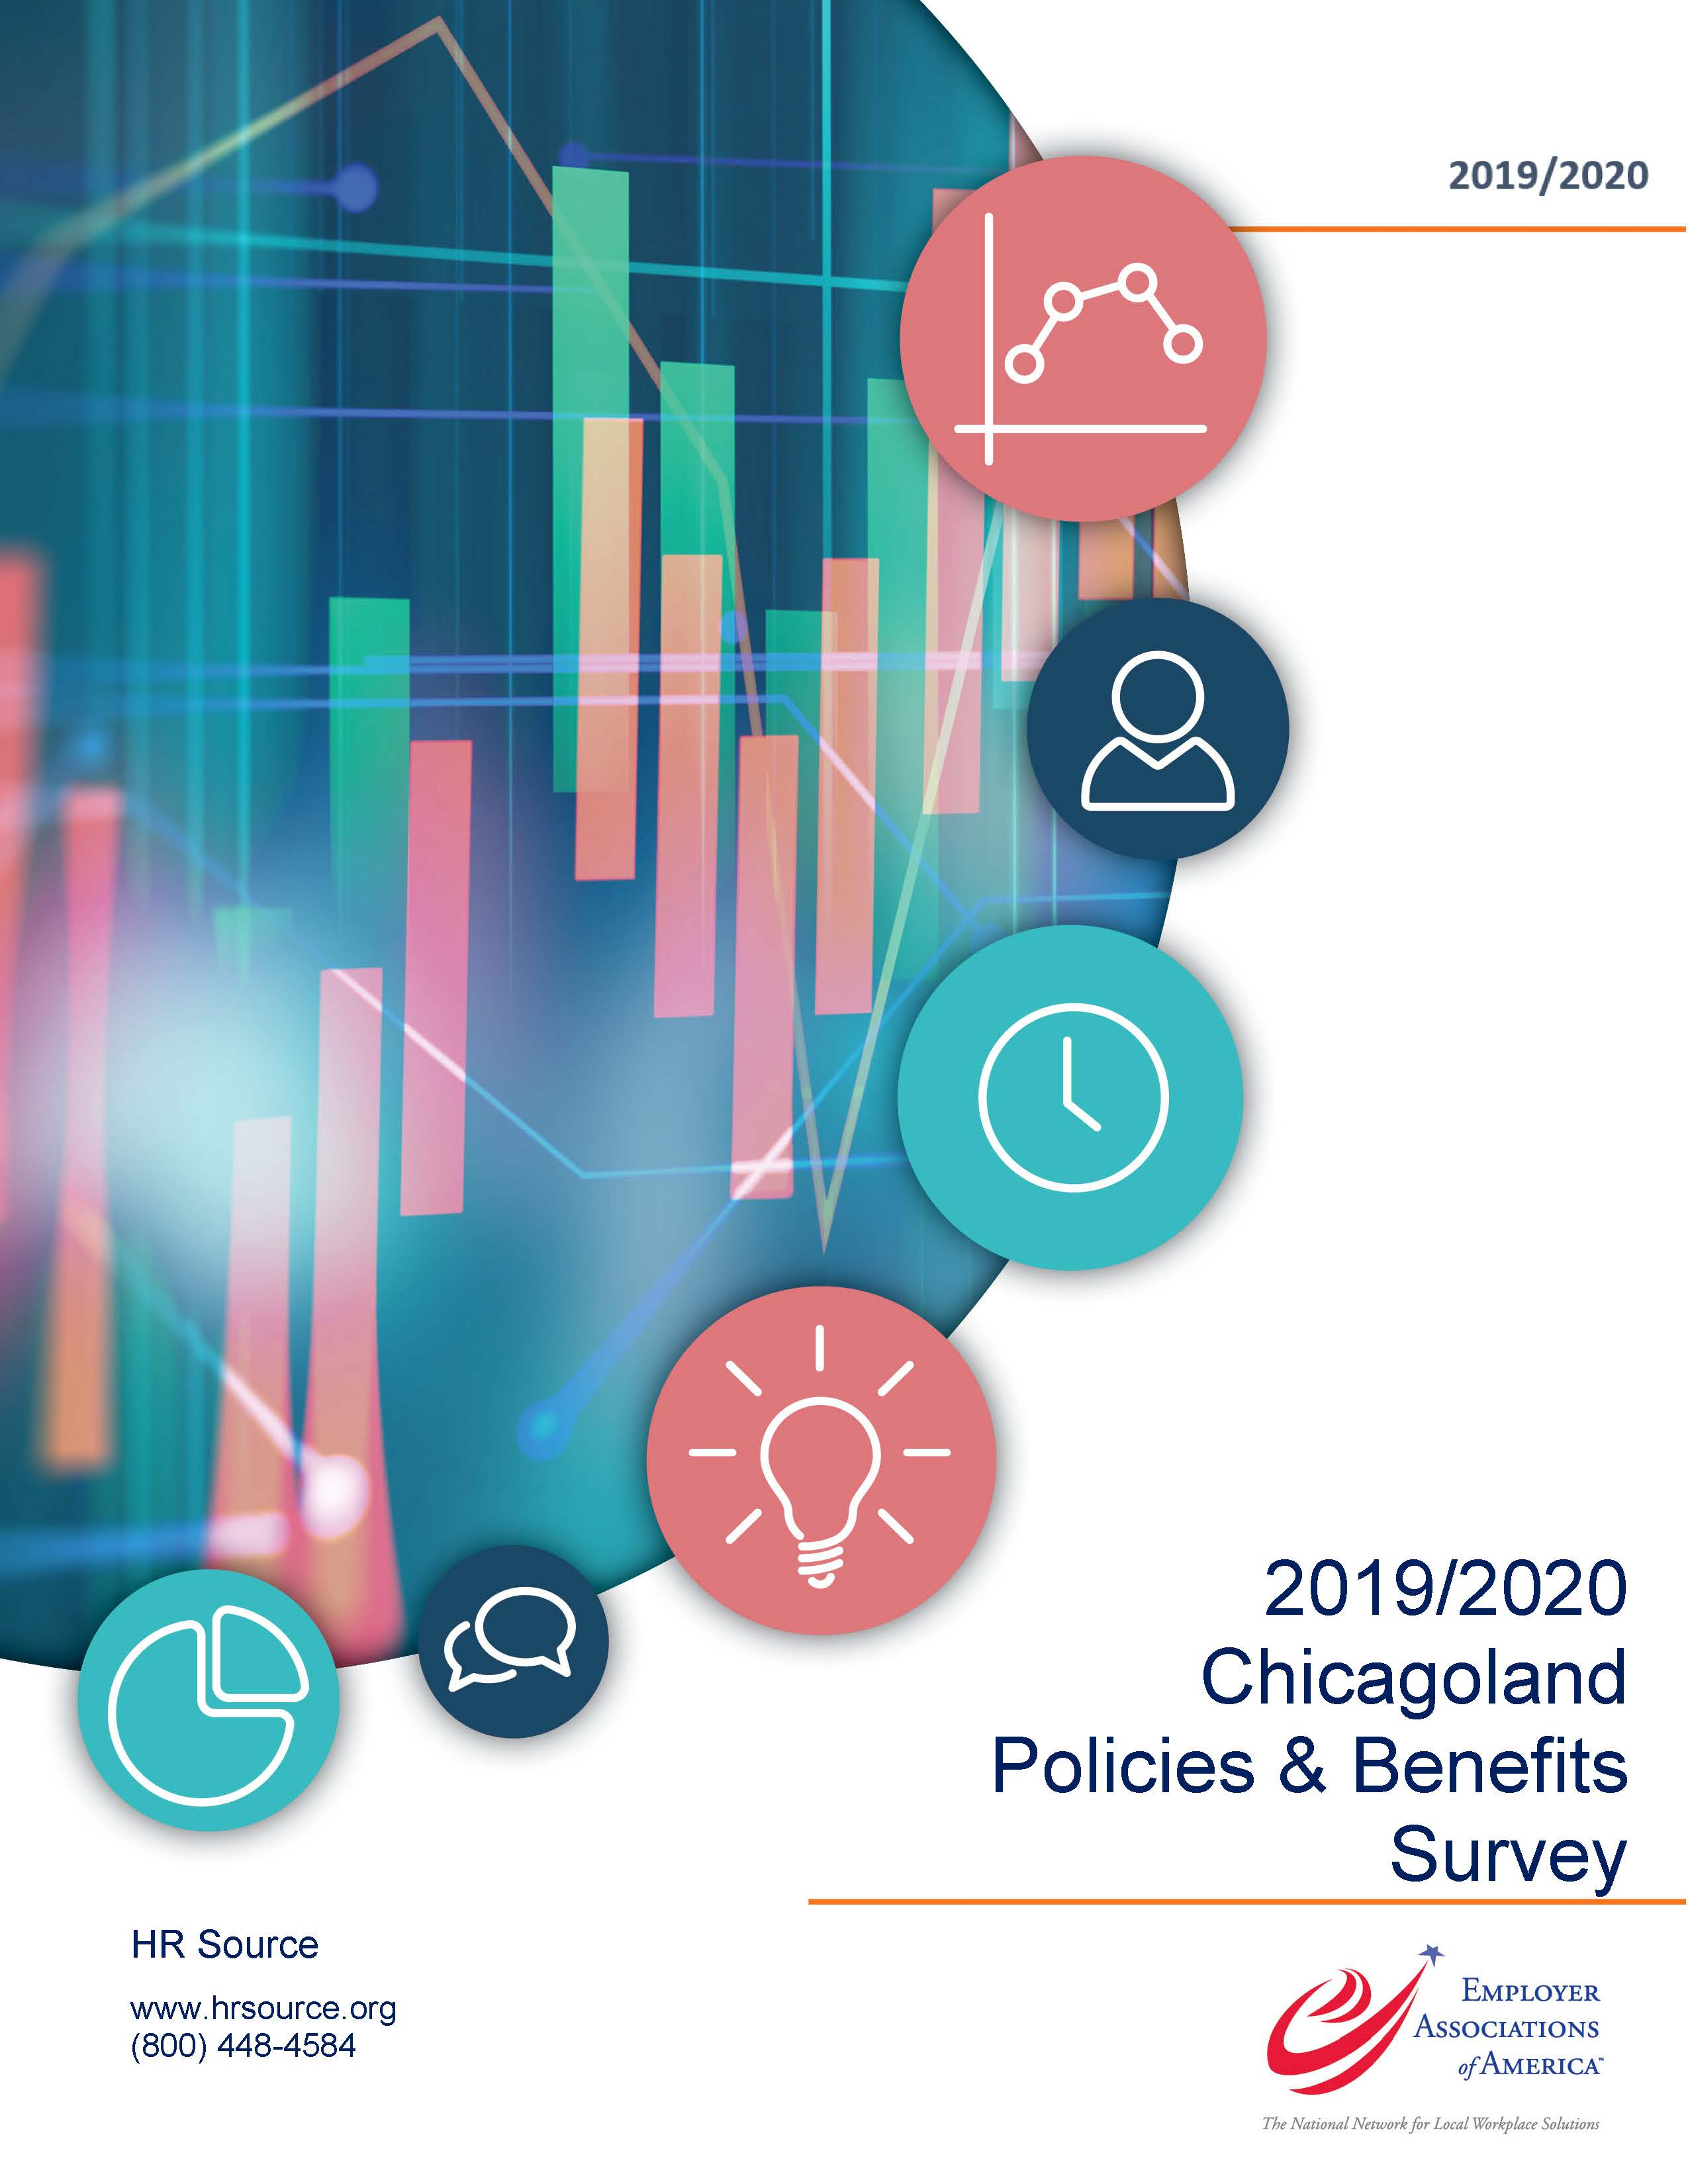 2019/2020 Chicagoland Policies and Benefits Survey